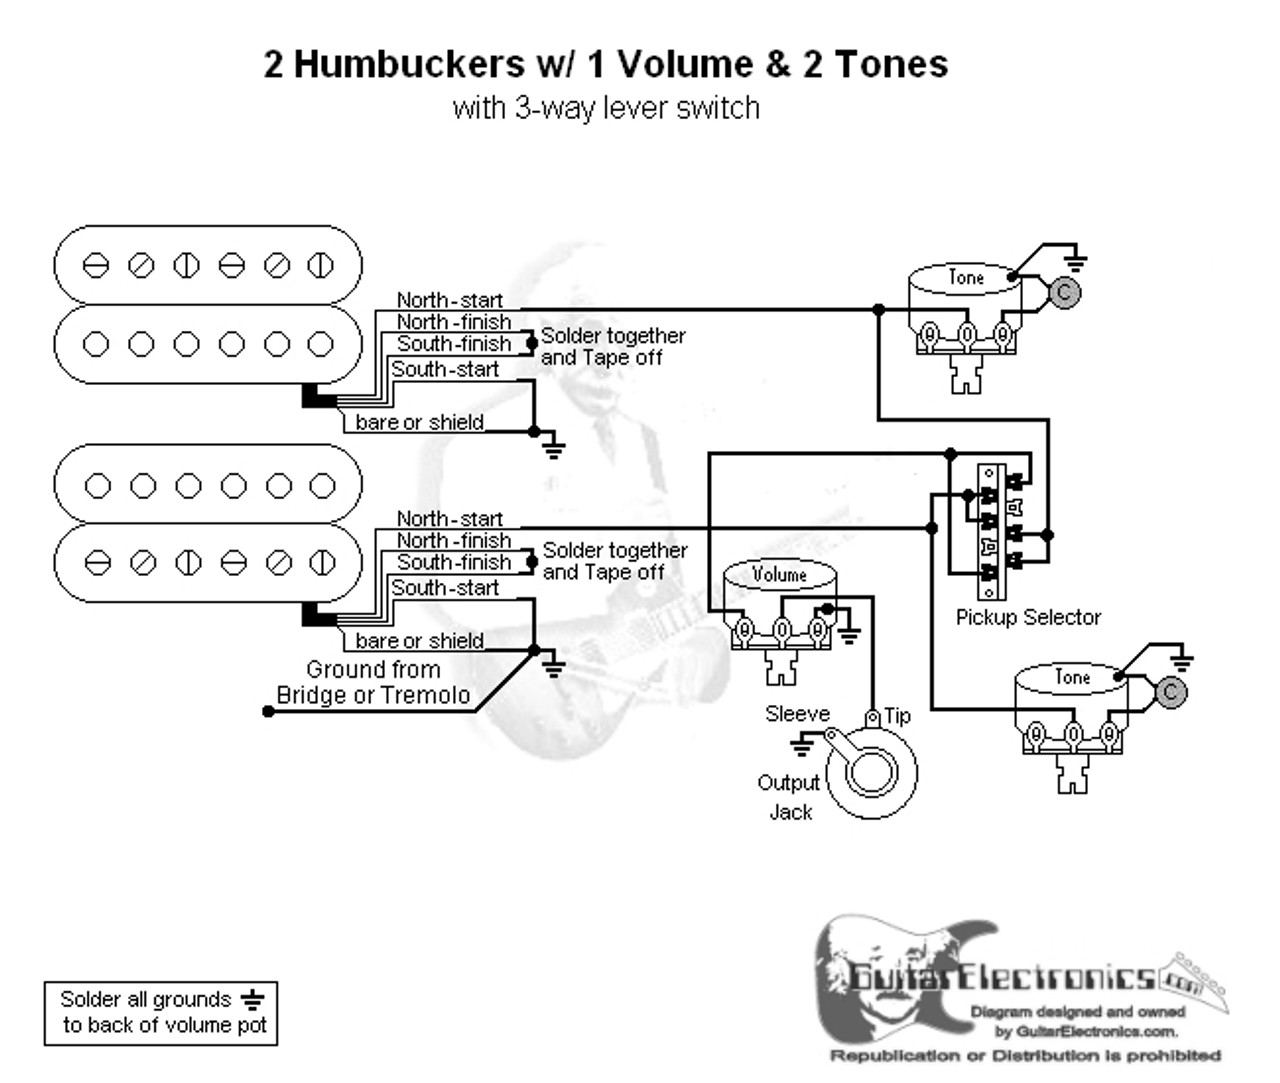 medium resolution of strat wiring diagram 1 volume 2 tones wiring diagram paper2 humbuckers 3 way lever switch 1 volume 2 tones bass wiring diagram 1 volume 2 tone strat wiring